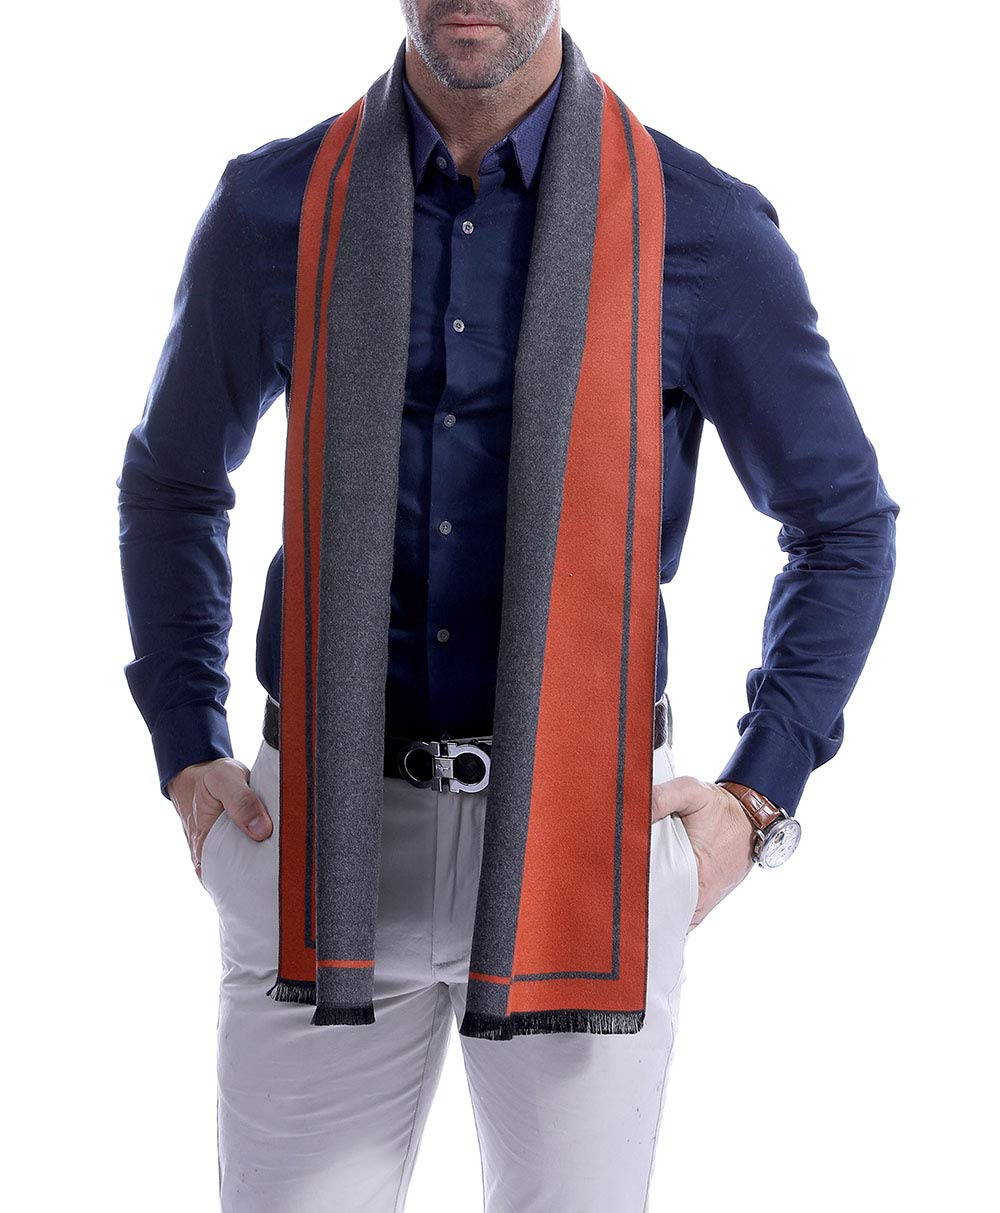 LUOUSE Mens Winter Cashmere Scarf Fashion Formal Soft Scarves for Men